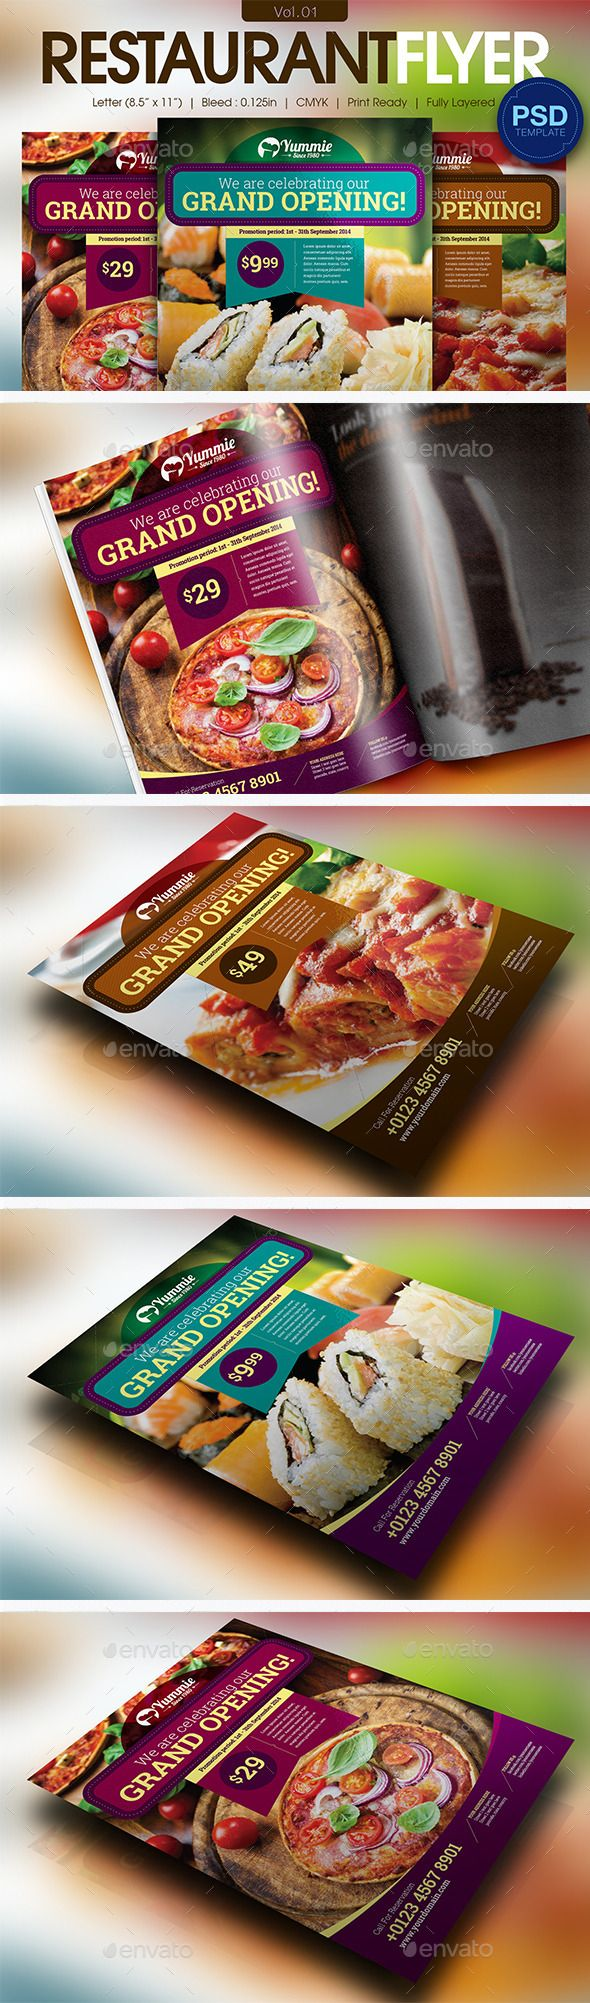 Restaurant Flyer Tempalte #design #foodflyer Download: http://graphicriver.net/item/restaurant-flyer-vol01/11595821?ref=ksioks